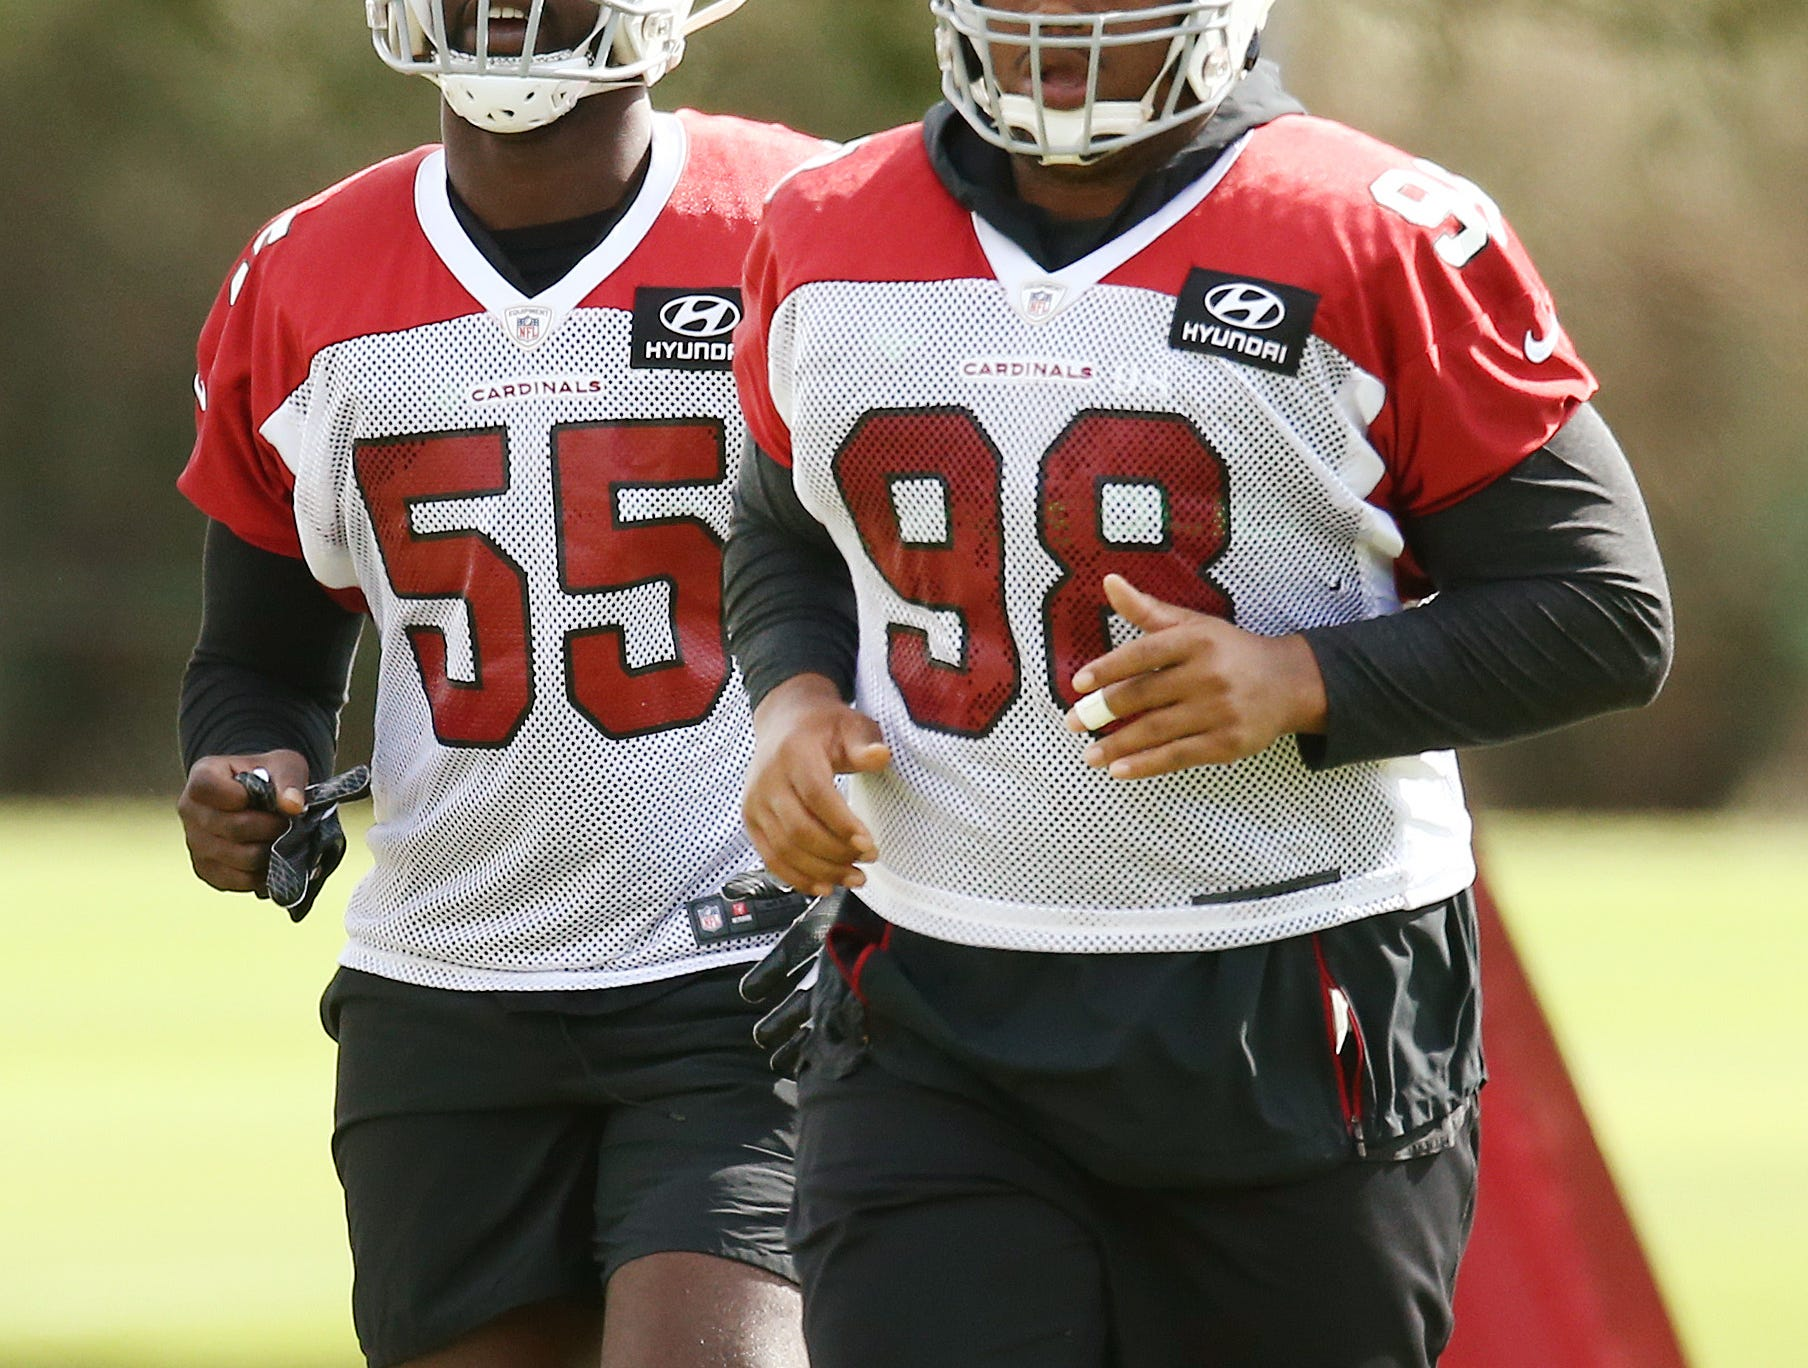 Arizona defensive tackle Corey Peterts (98) and defensive end Chandler Jones (55) during practice on Oct. 16, 2018 at the Cardinals Training Facility in Tempe, Ariz.